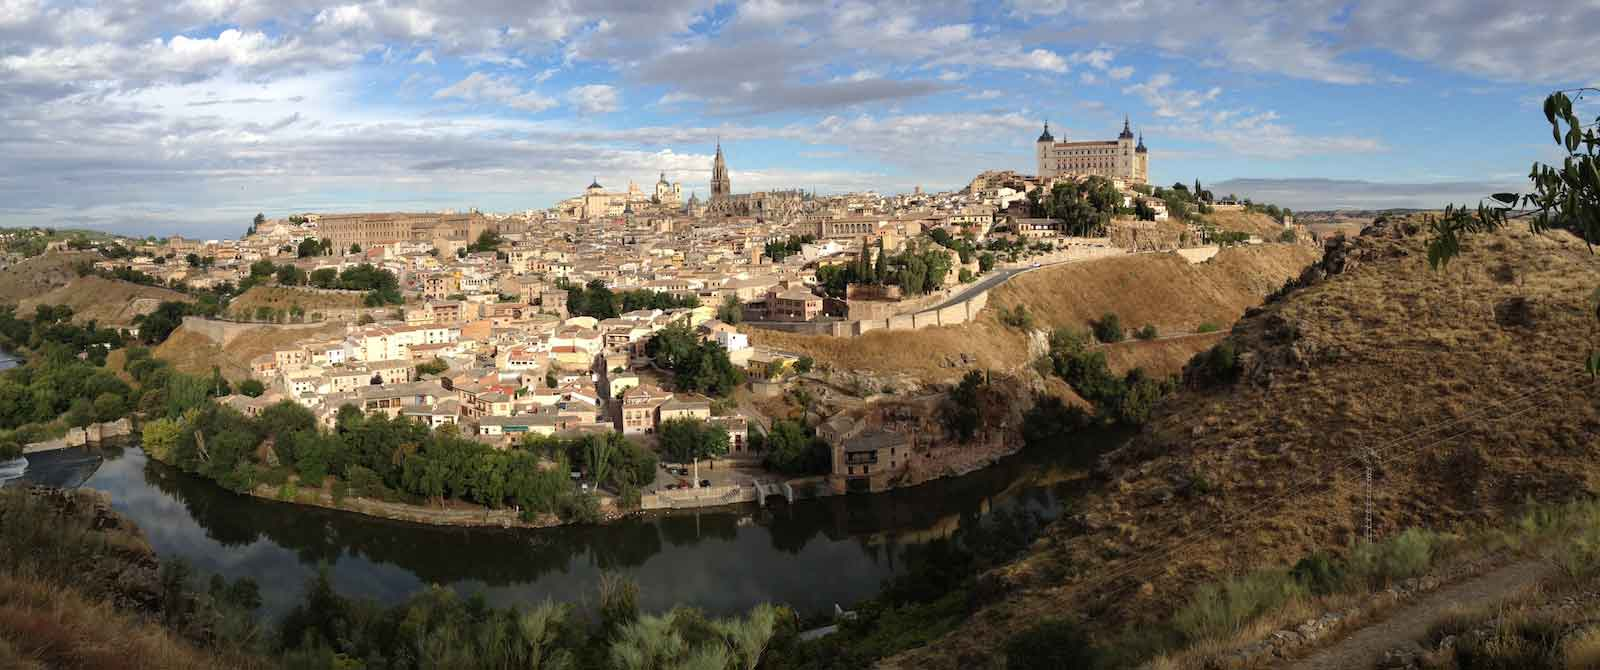 cycling holidays in spain toledo